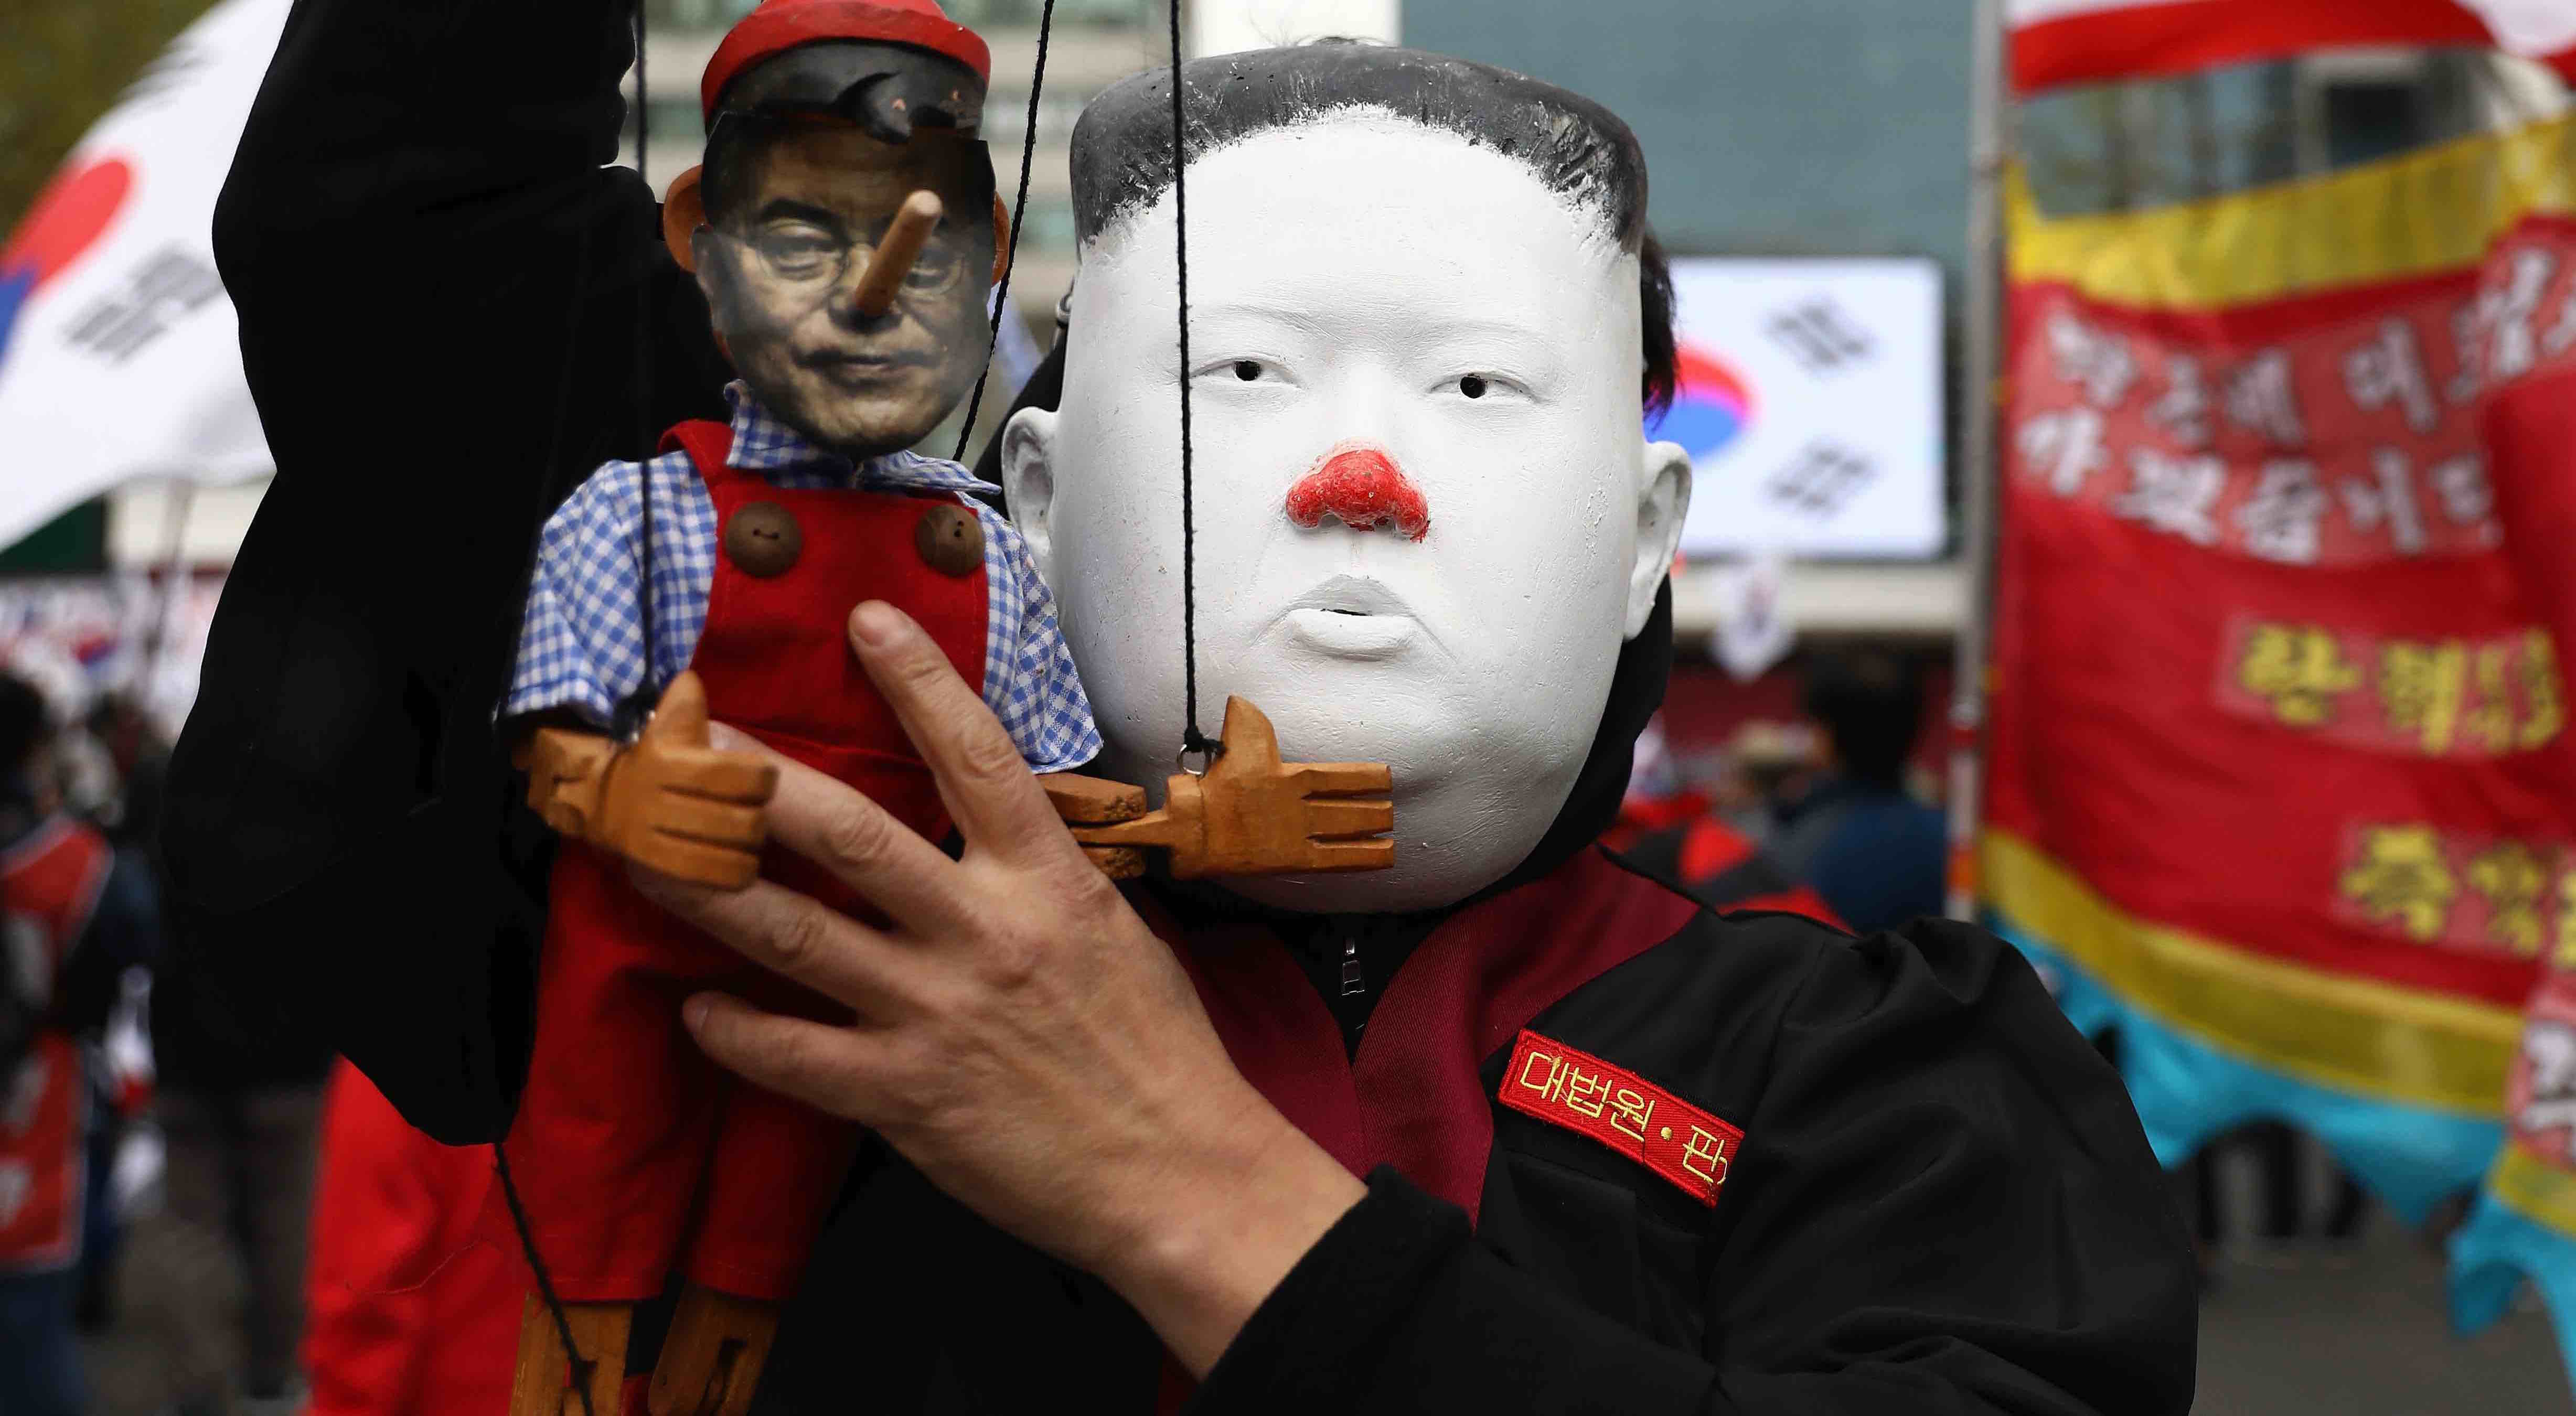 A protester in Seoul wearing a Kim Jong-un mask holds a doll of South Korea's Moon Jae-in (Photo: Chung Sung-Jun/Getty)